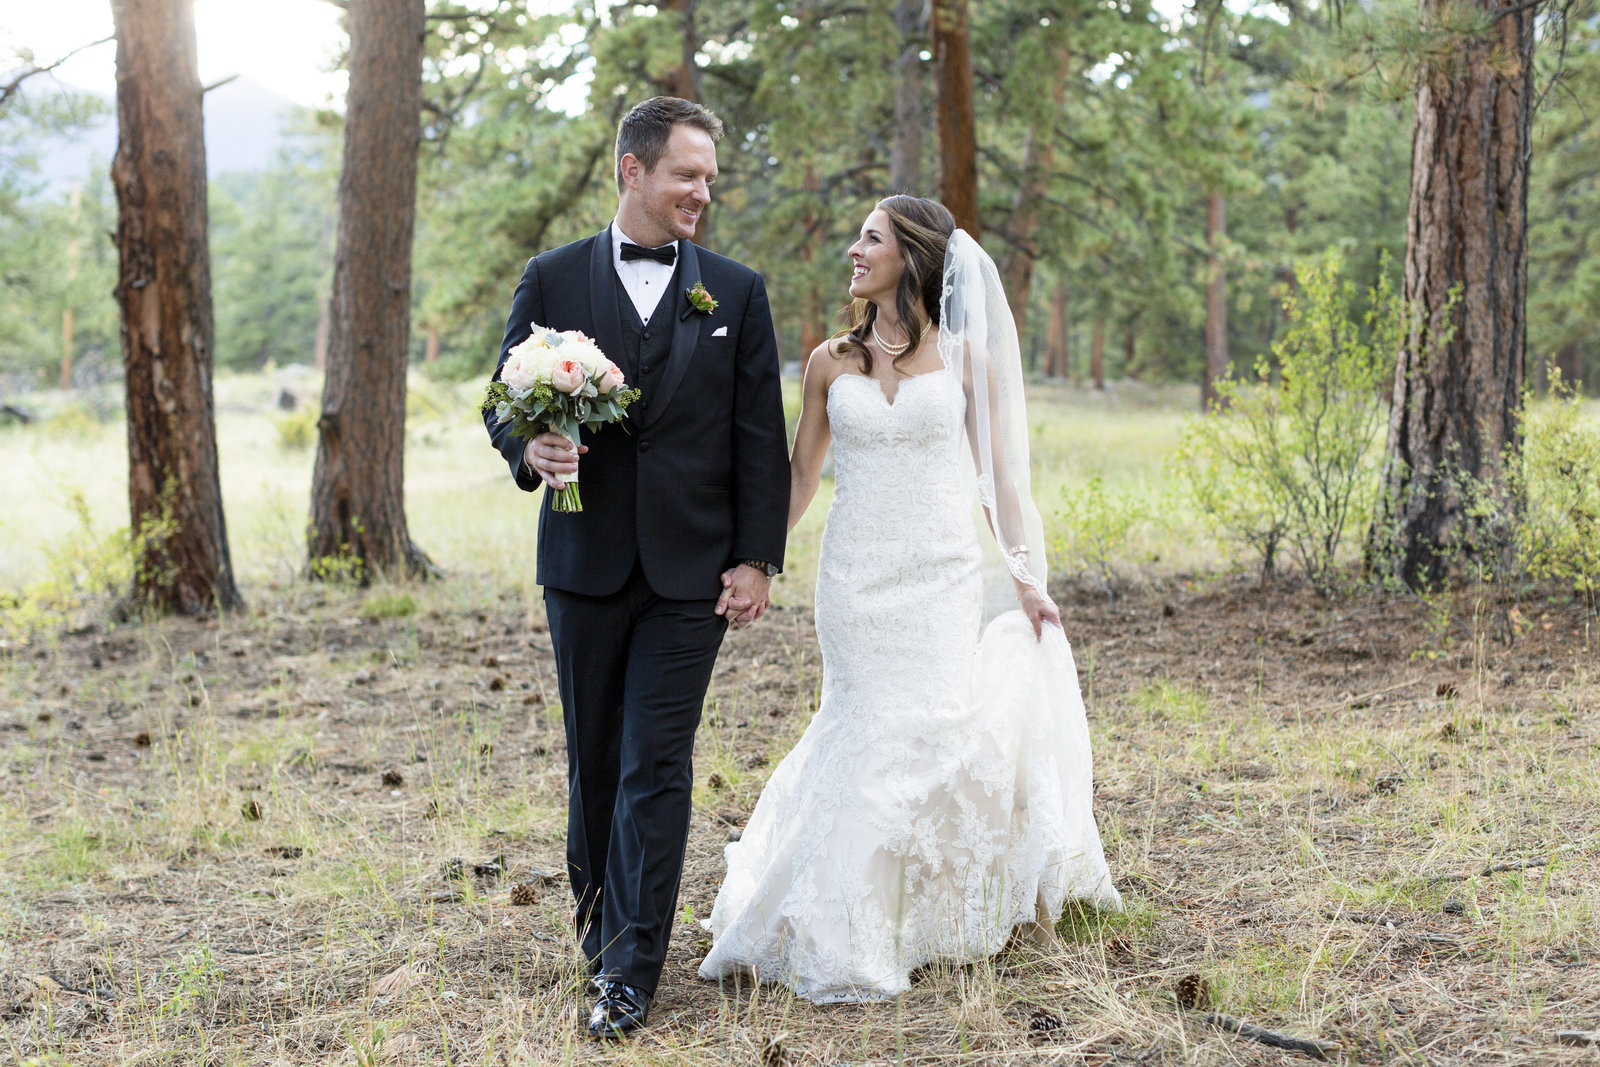 Jessi-Zach-Photography-Colorado-Mountain-Wedding-Photographer-Della-Terra-Mountain-Chateau_56